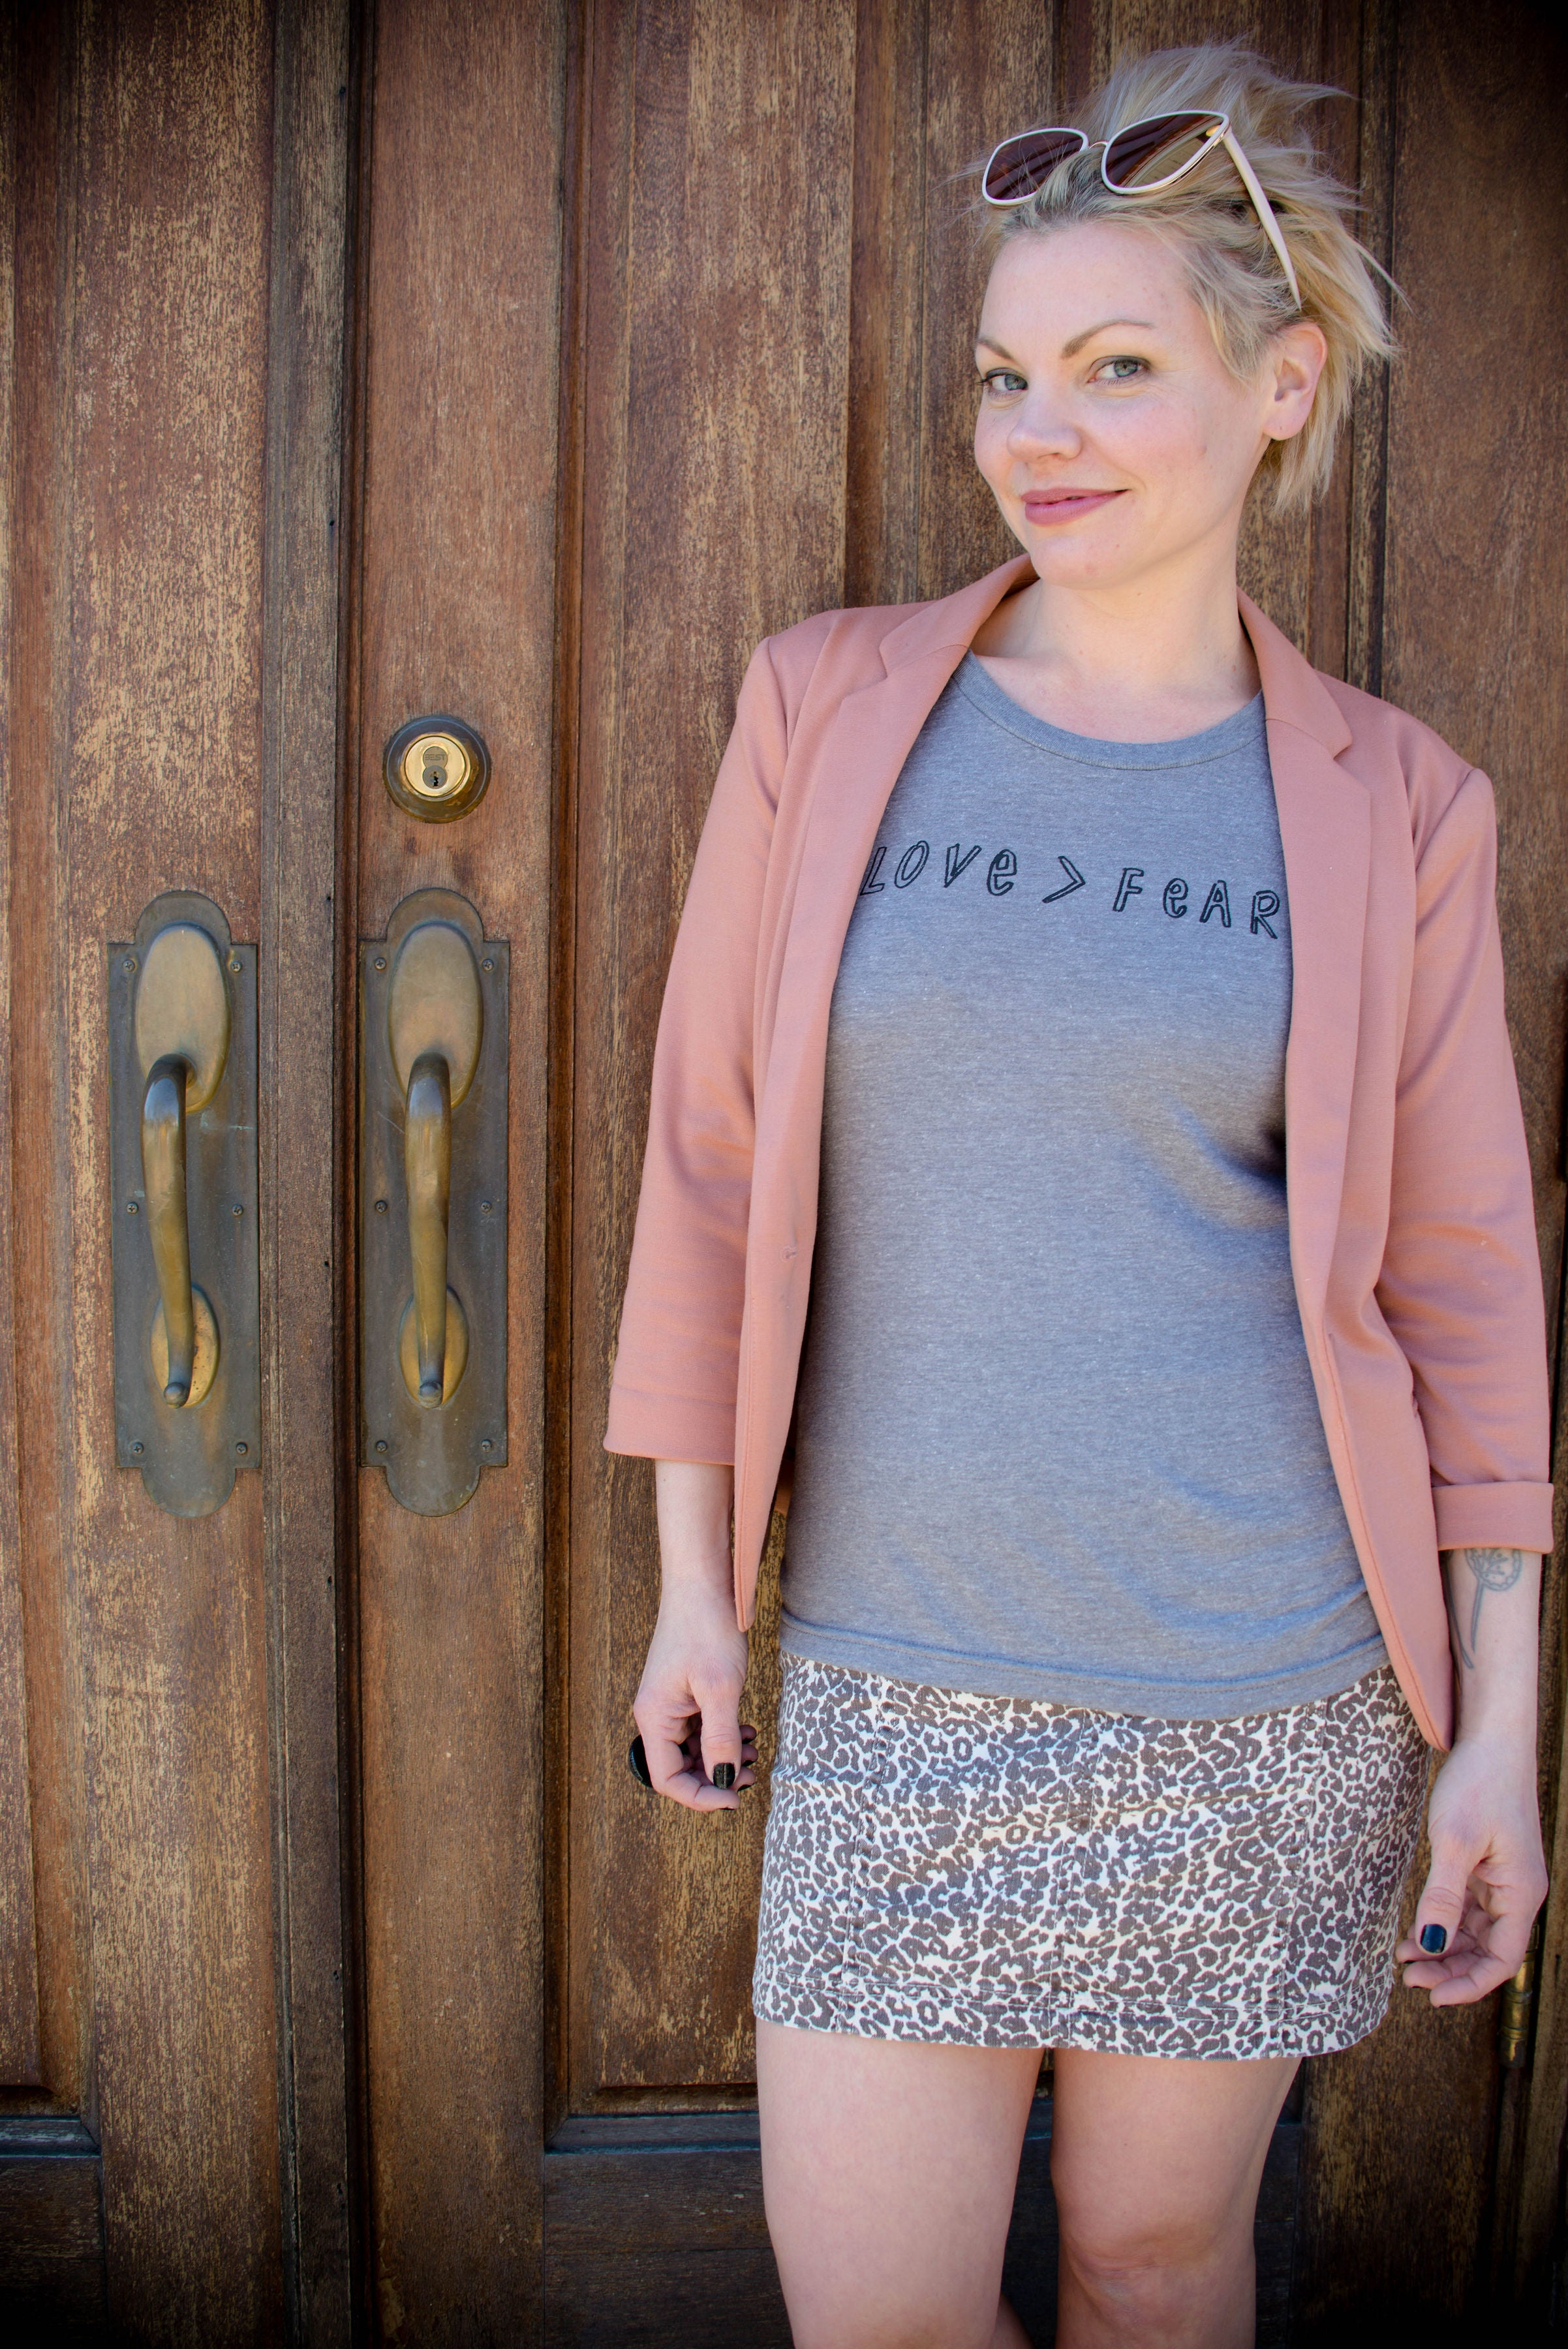 Love > Fear : women's tri-blend tee